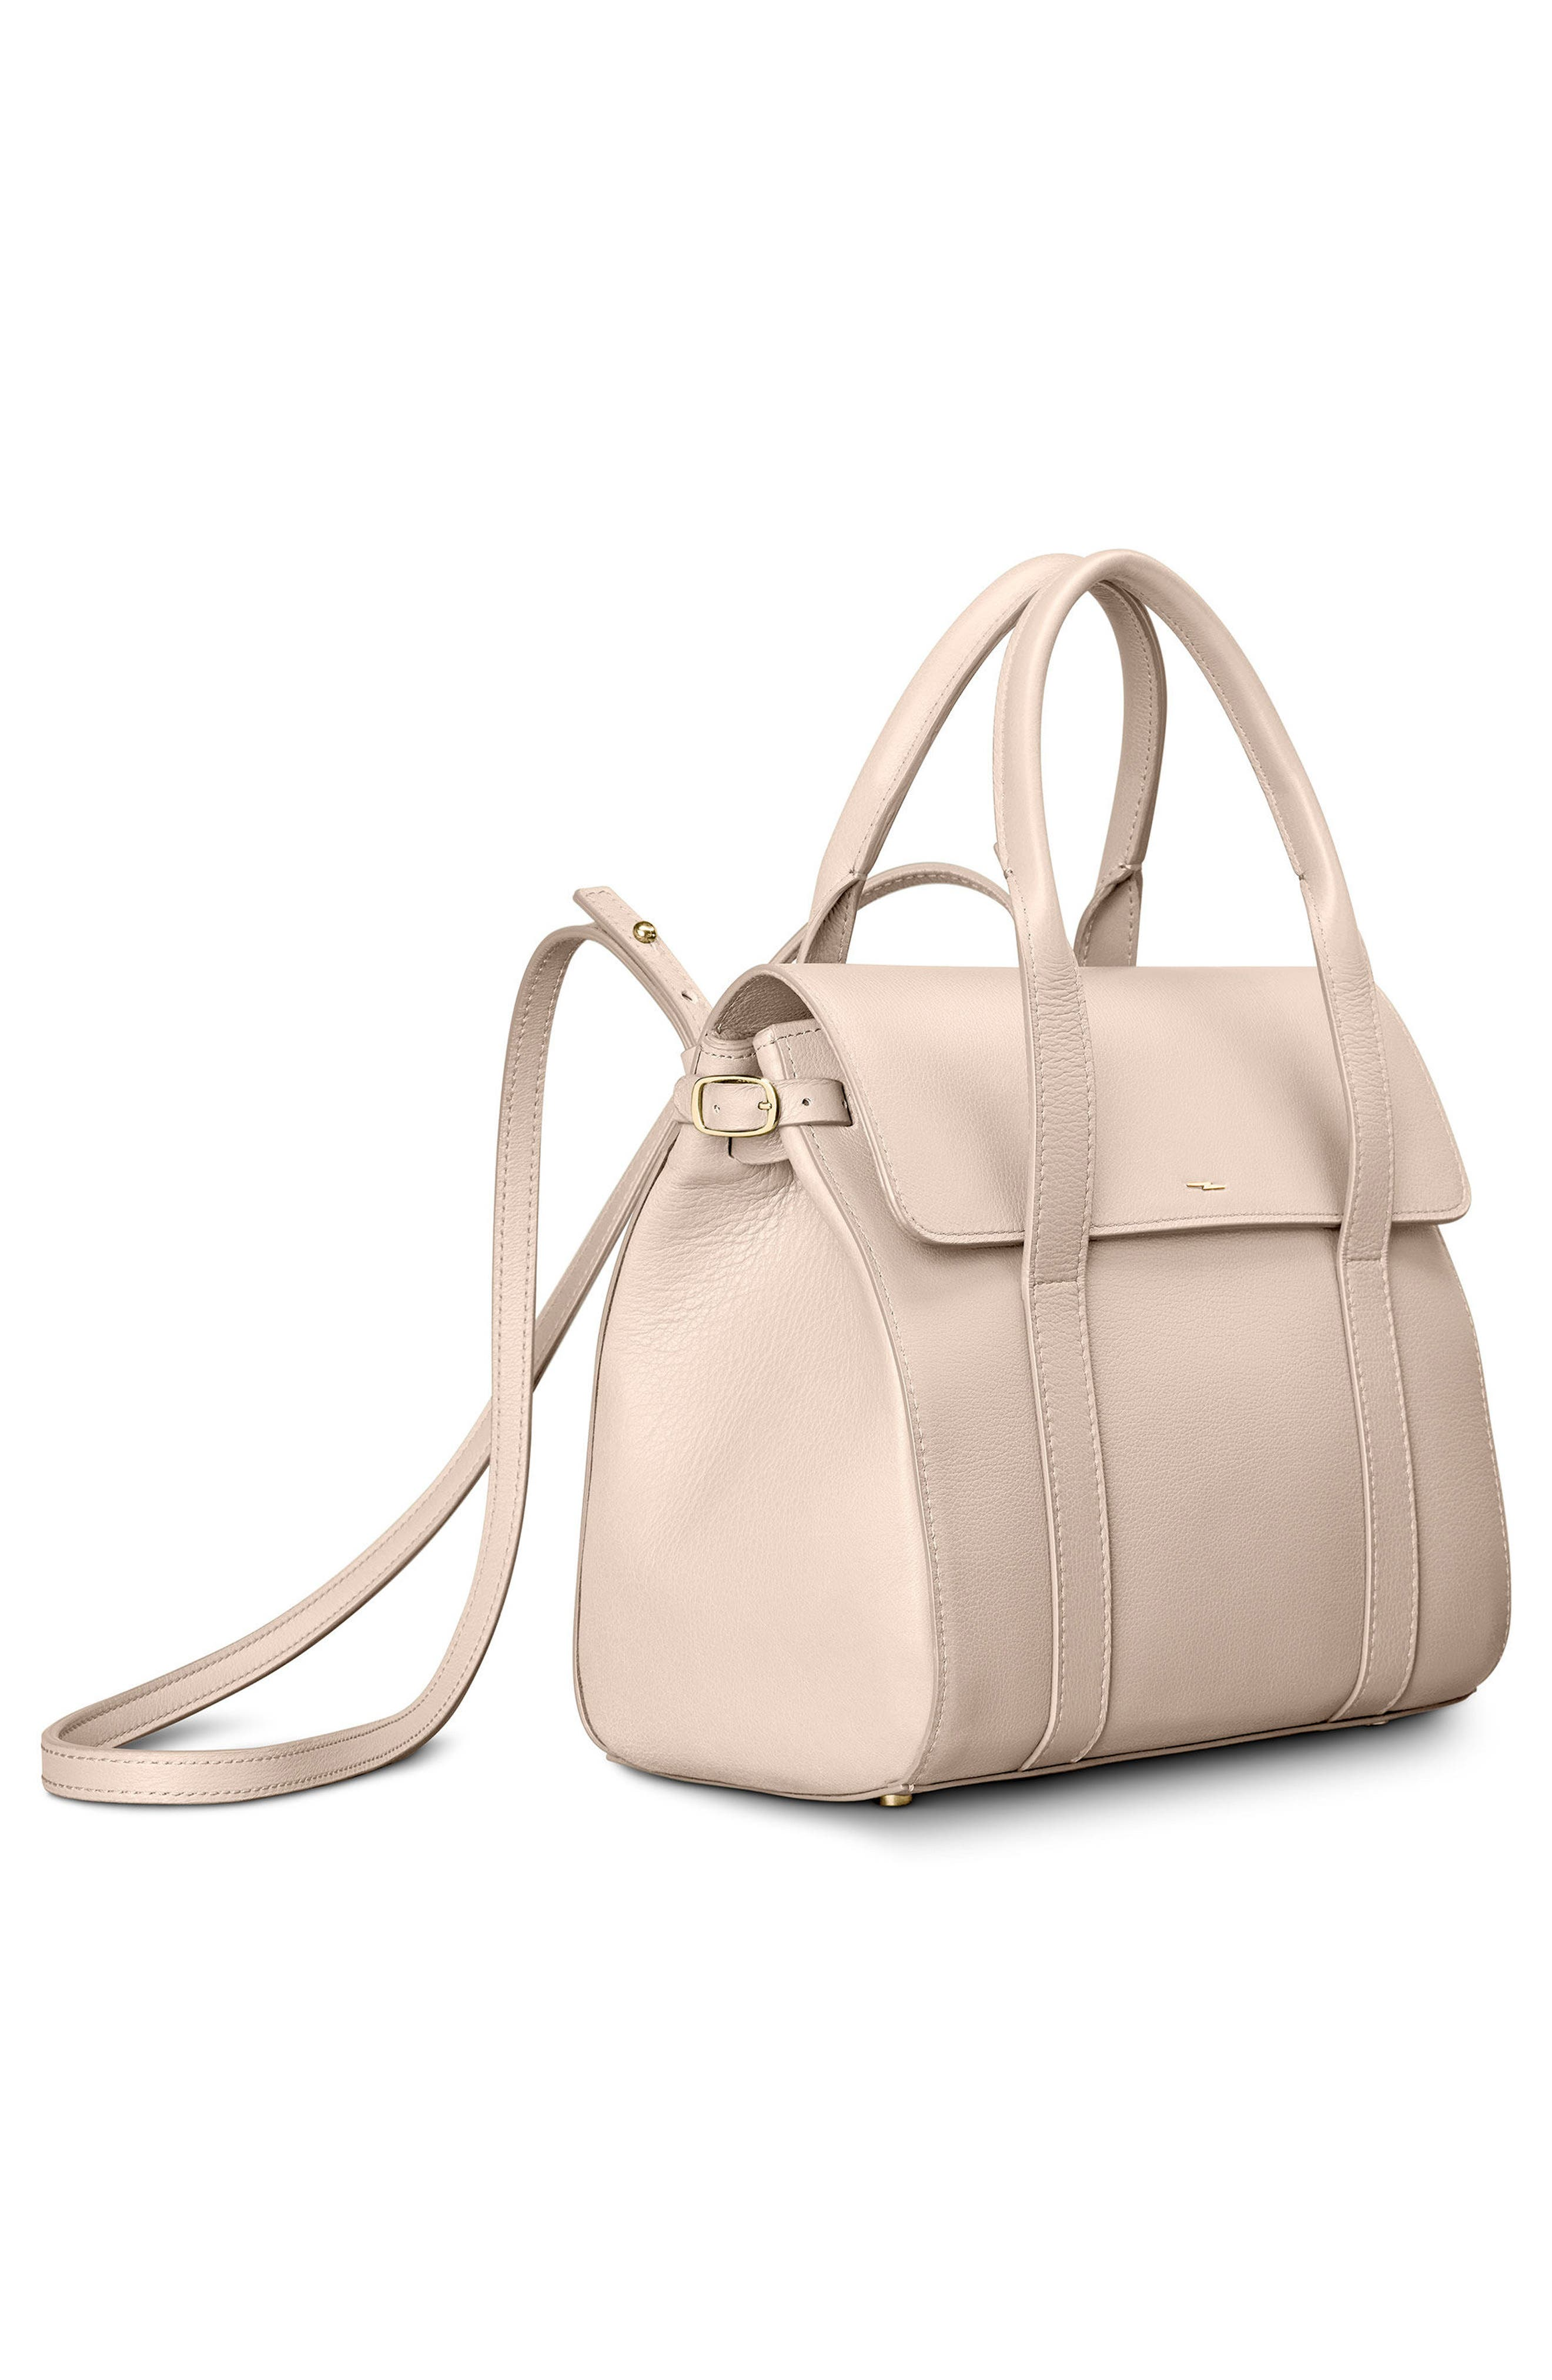 Small Grained Leather Satchel,                             Alternate thumbnail 5, color,                             SOFT BLUSH